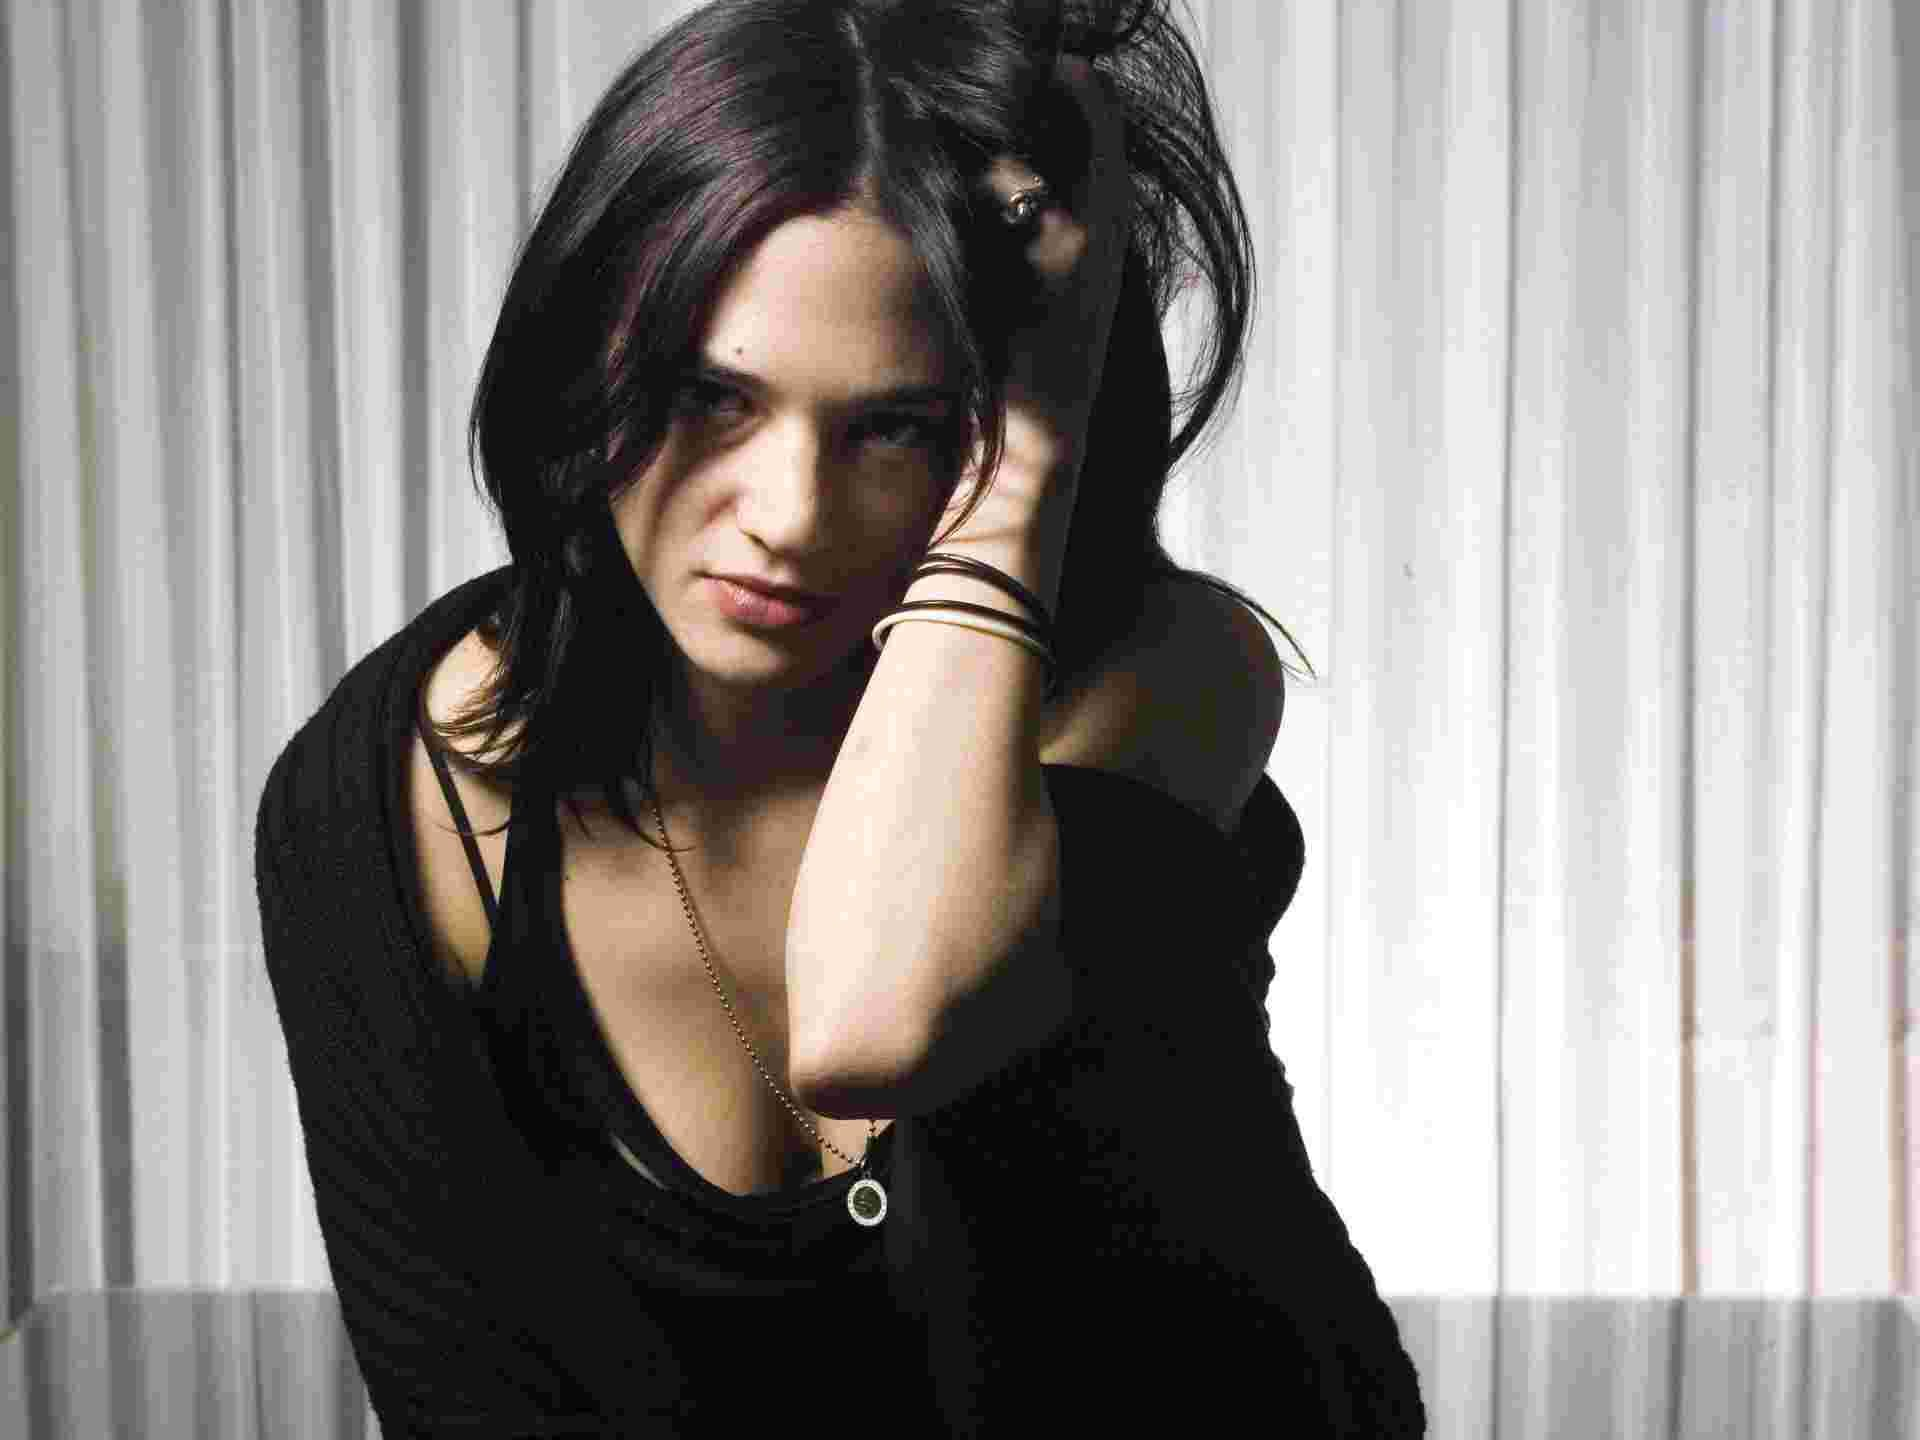 1920x1440 - Asia Argento Wallpapers 20